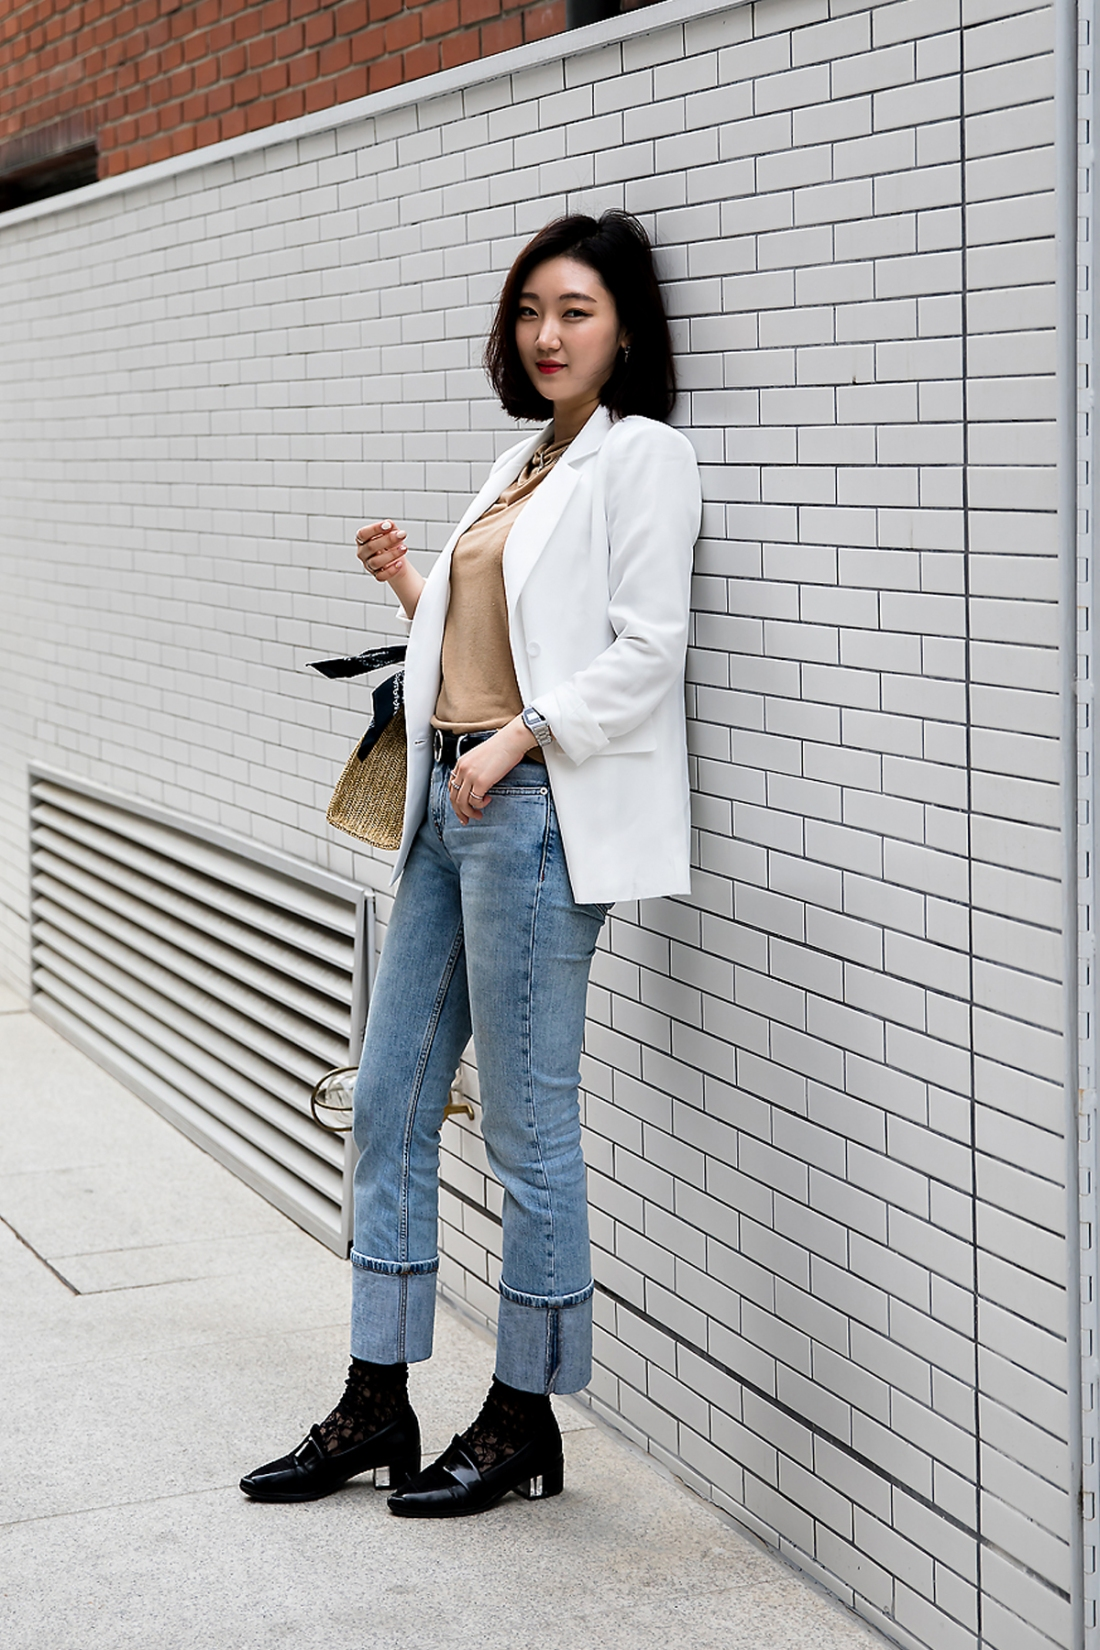 Jung Soojin, Street Fashion 2017 in Seoul.jpg